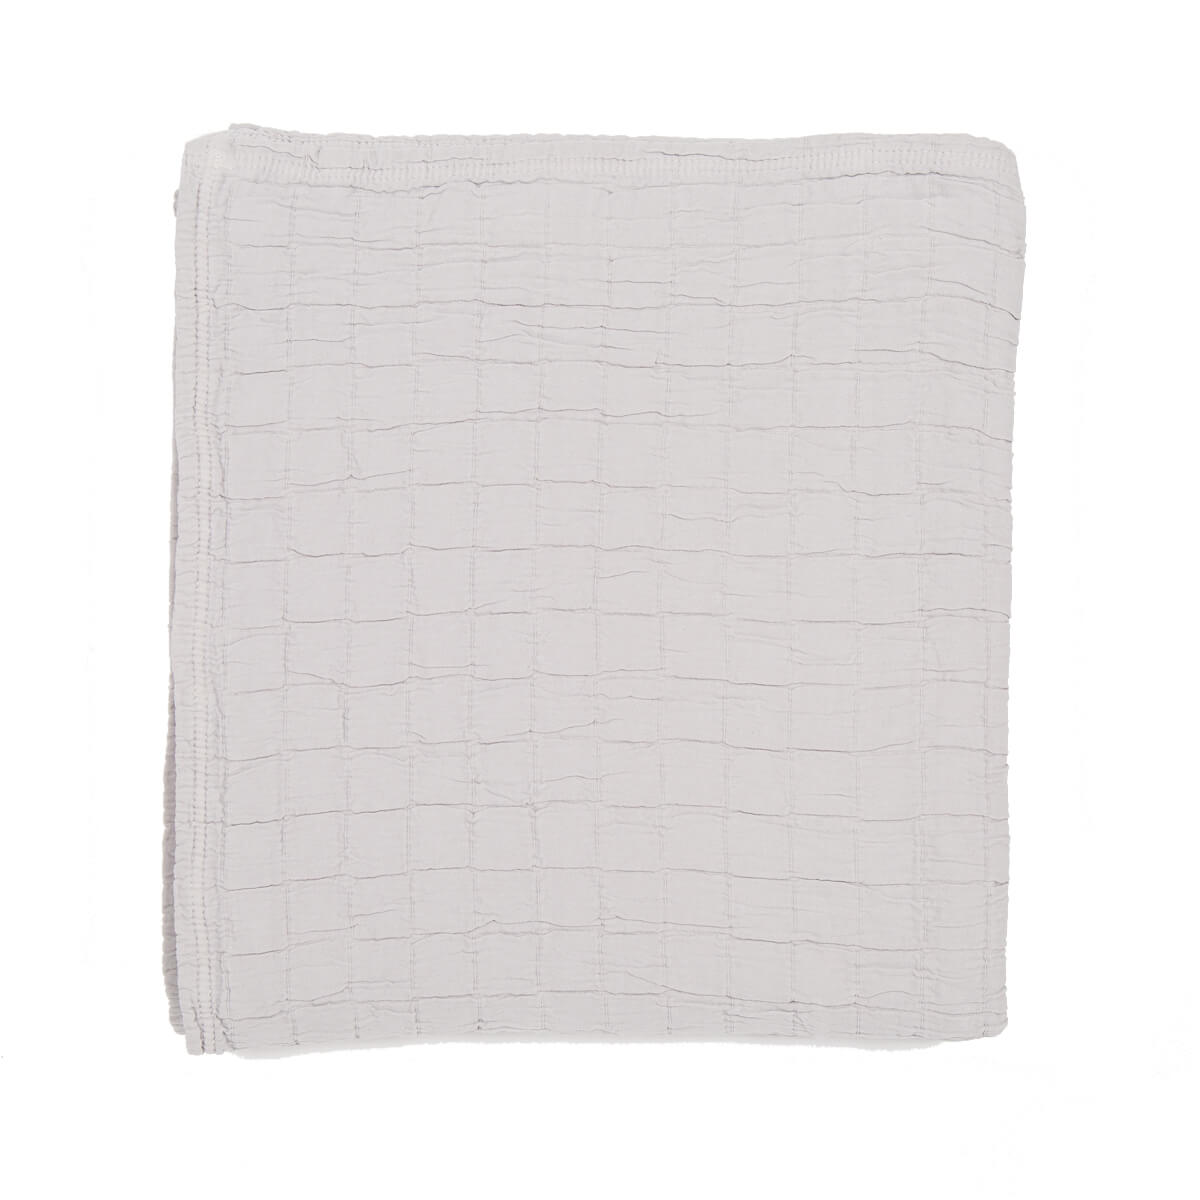 MATRI Aava bedspread light grey kopie